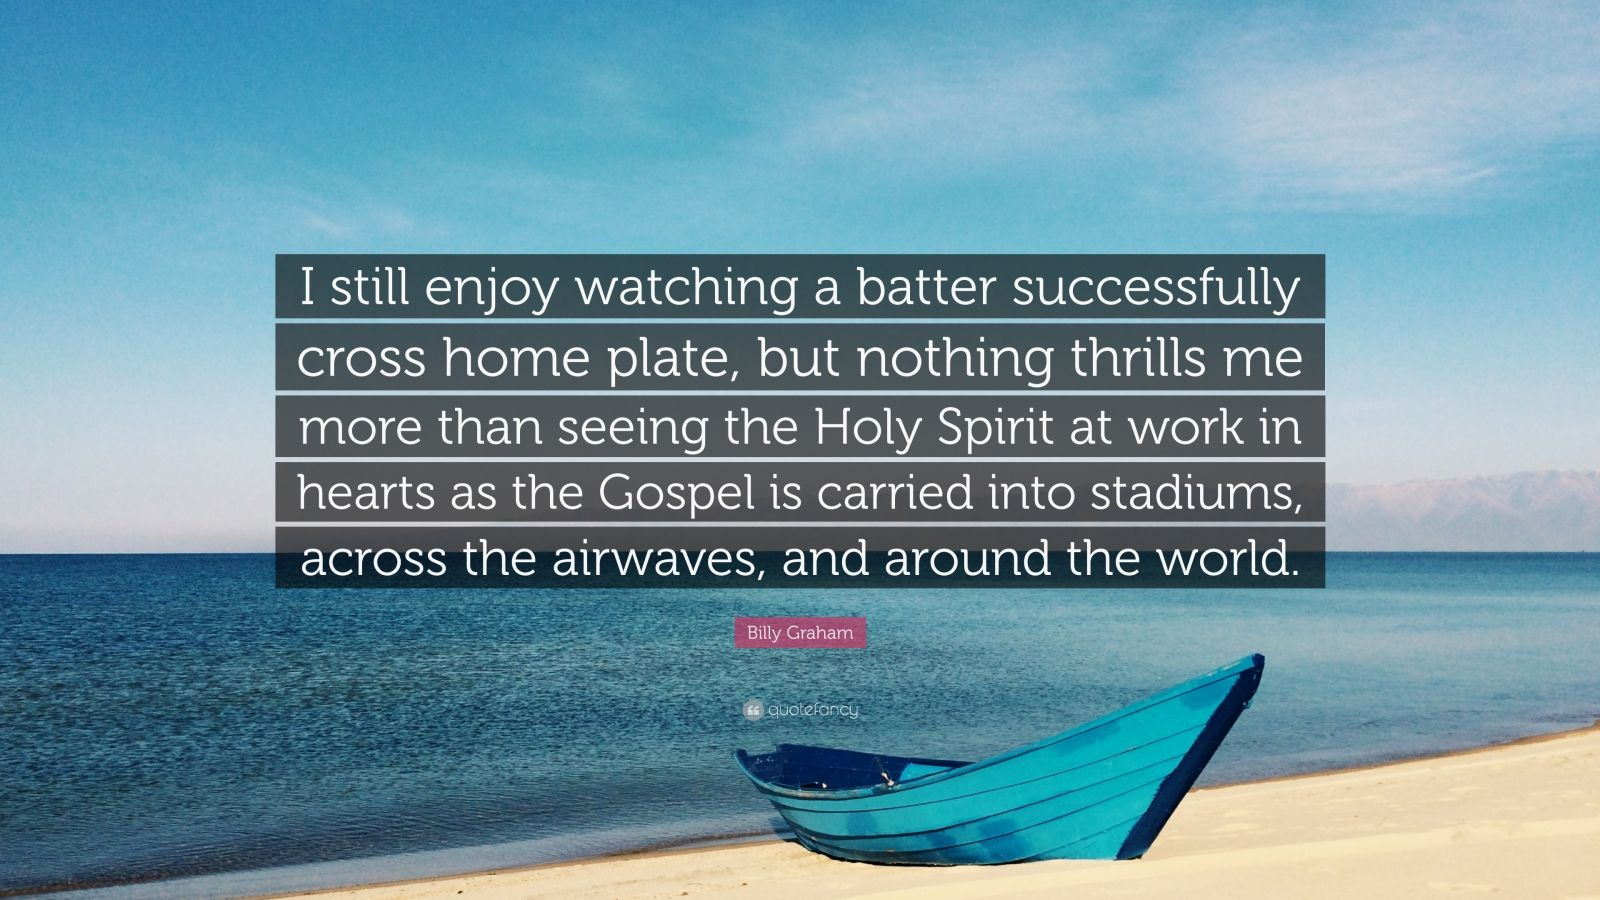 """Billy Graham Quote: """"I still enjoy watching a batter successfully cross home plate, but nothing thrills me more than seeing the Holy Spirit at work in hearts as the Gospel is carried into stadiums, across the airwaves, and around the world."""""""